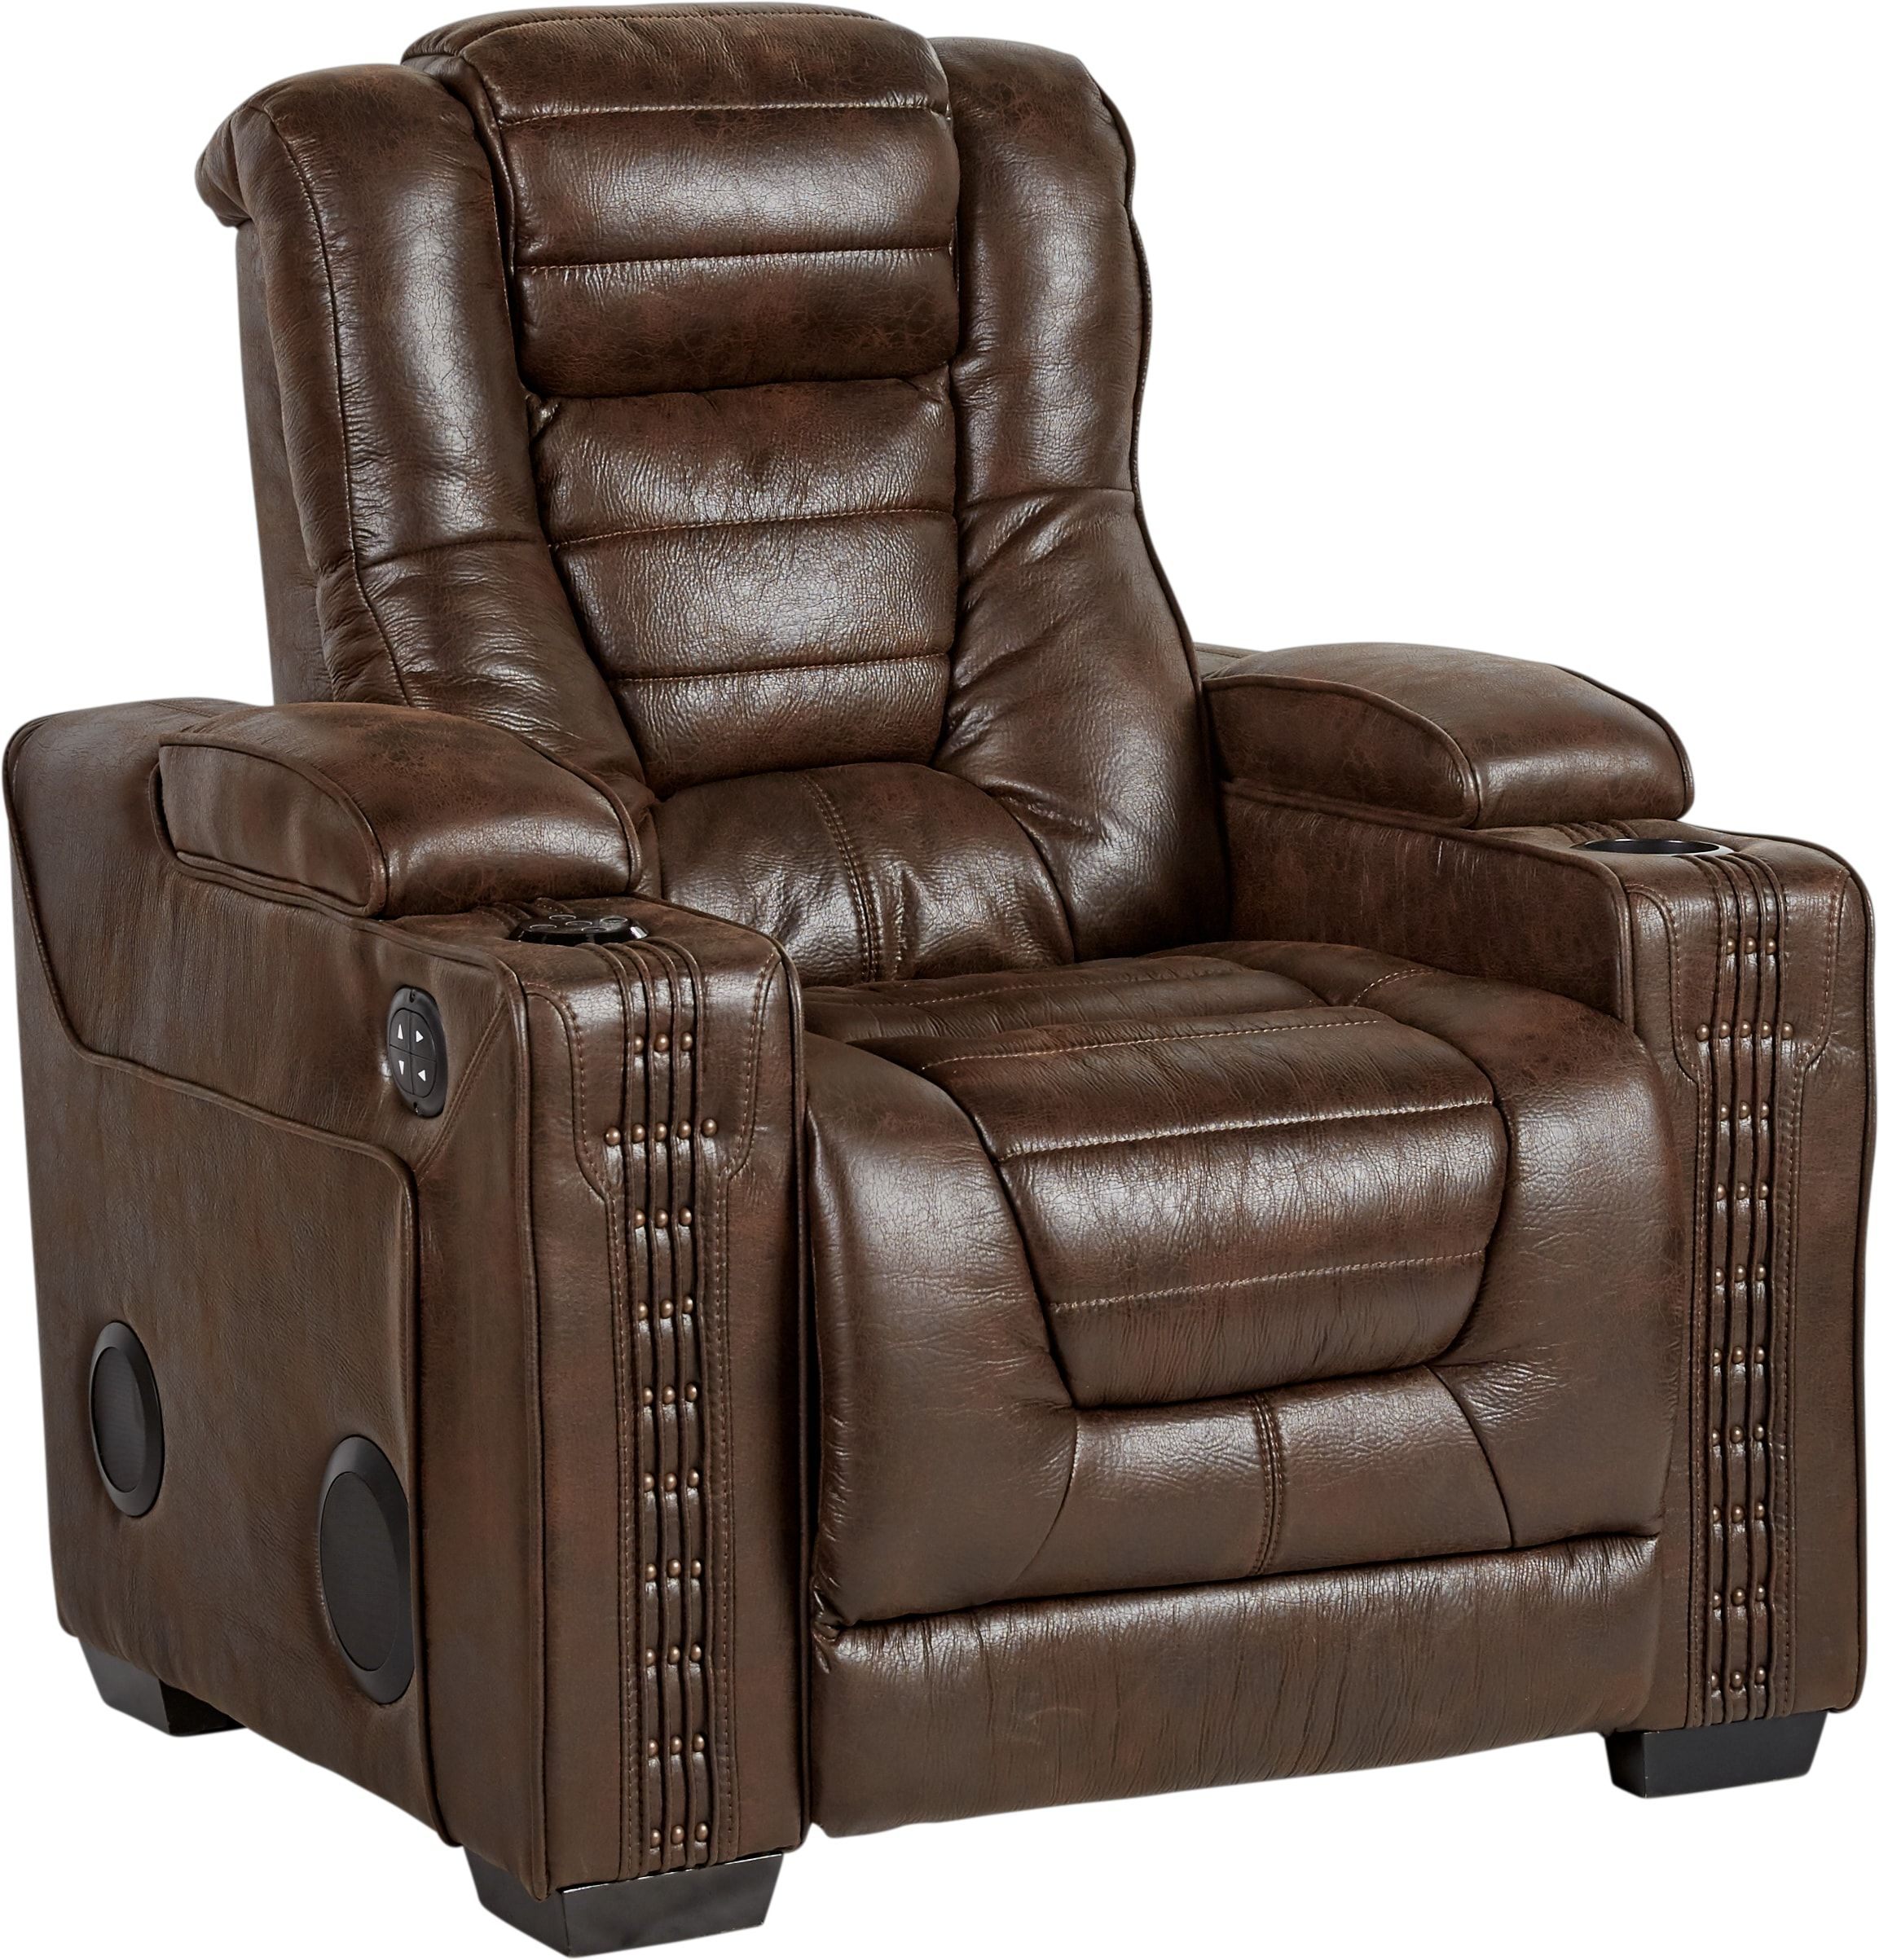 Swell Eric Church Highway To Home Chief Brown Power Plus Recliner Uwap Interior Chair Design Uwaporg